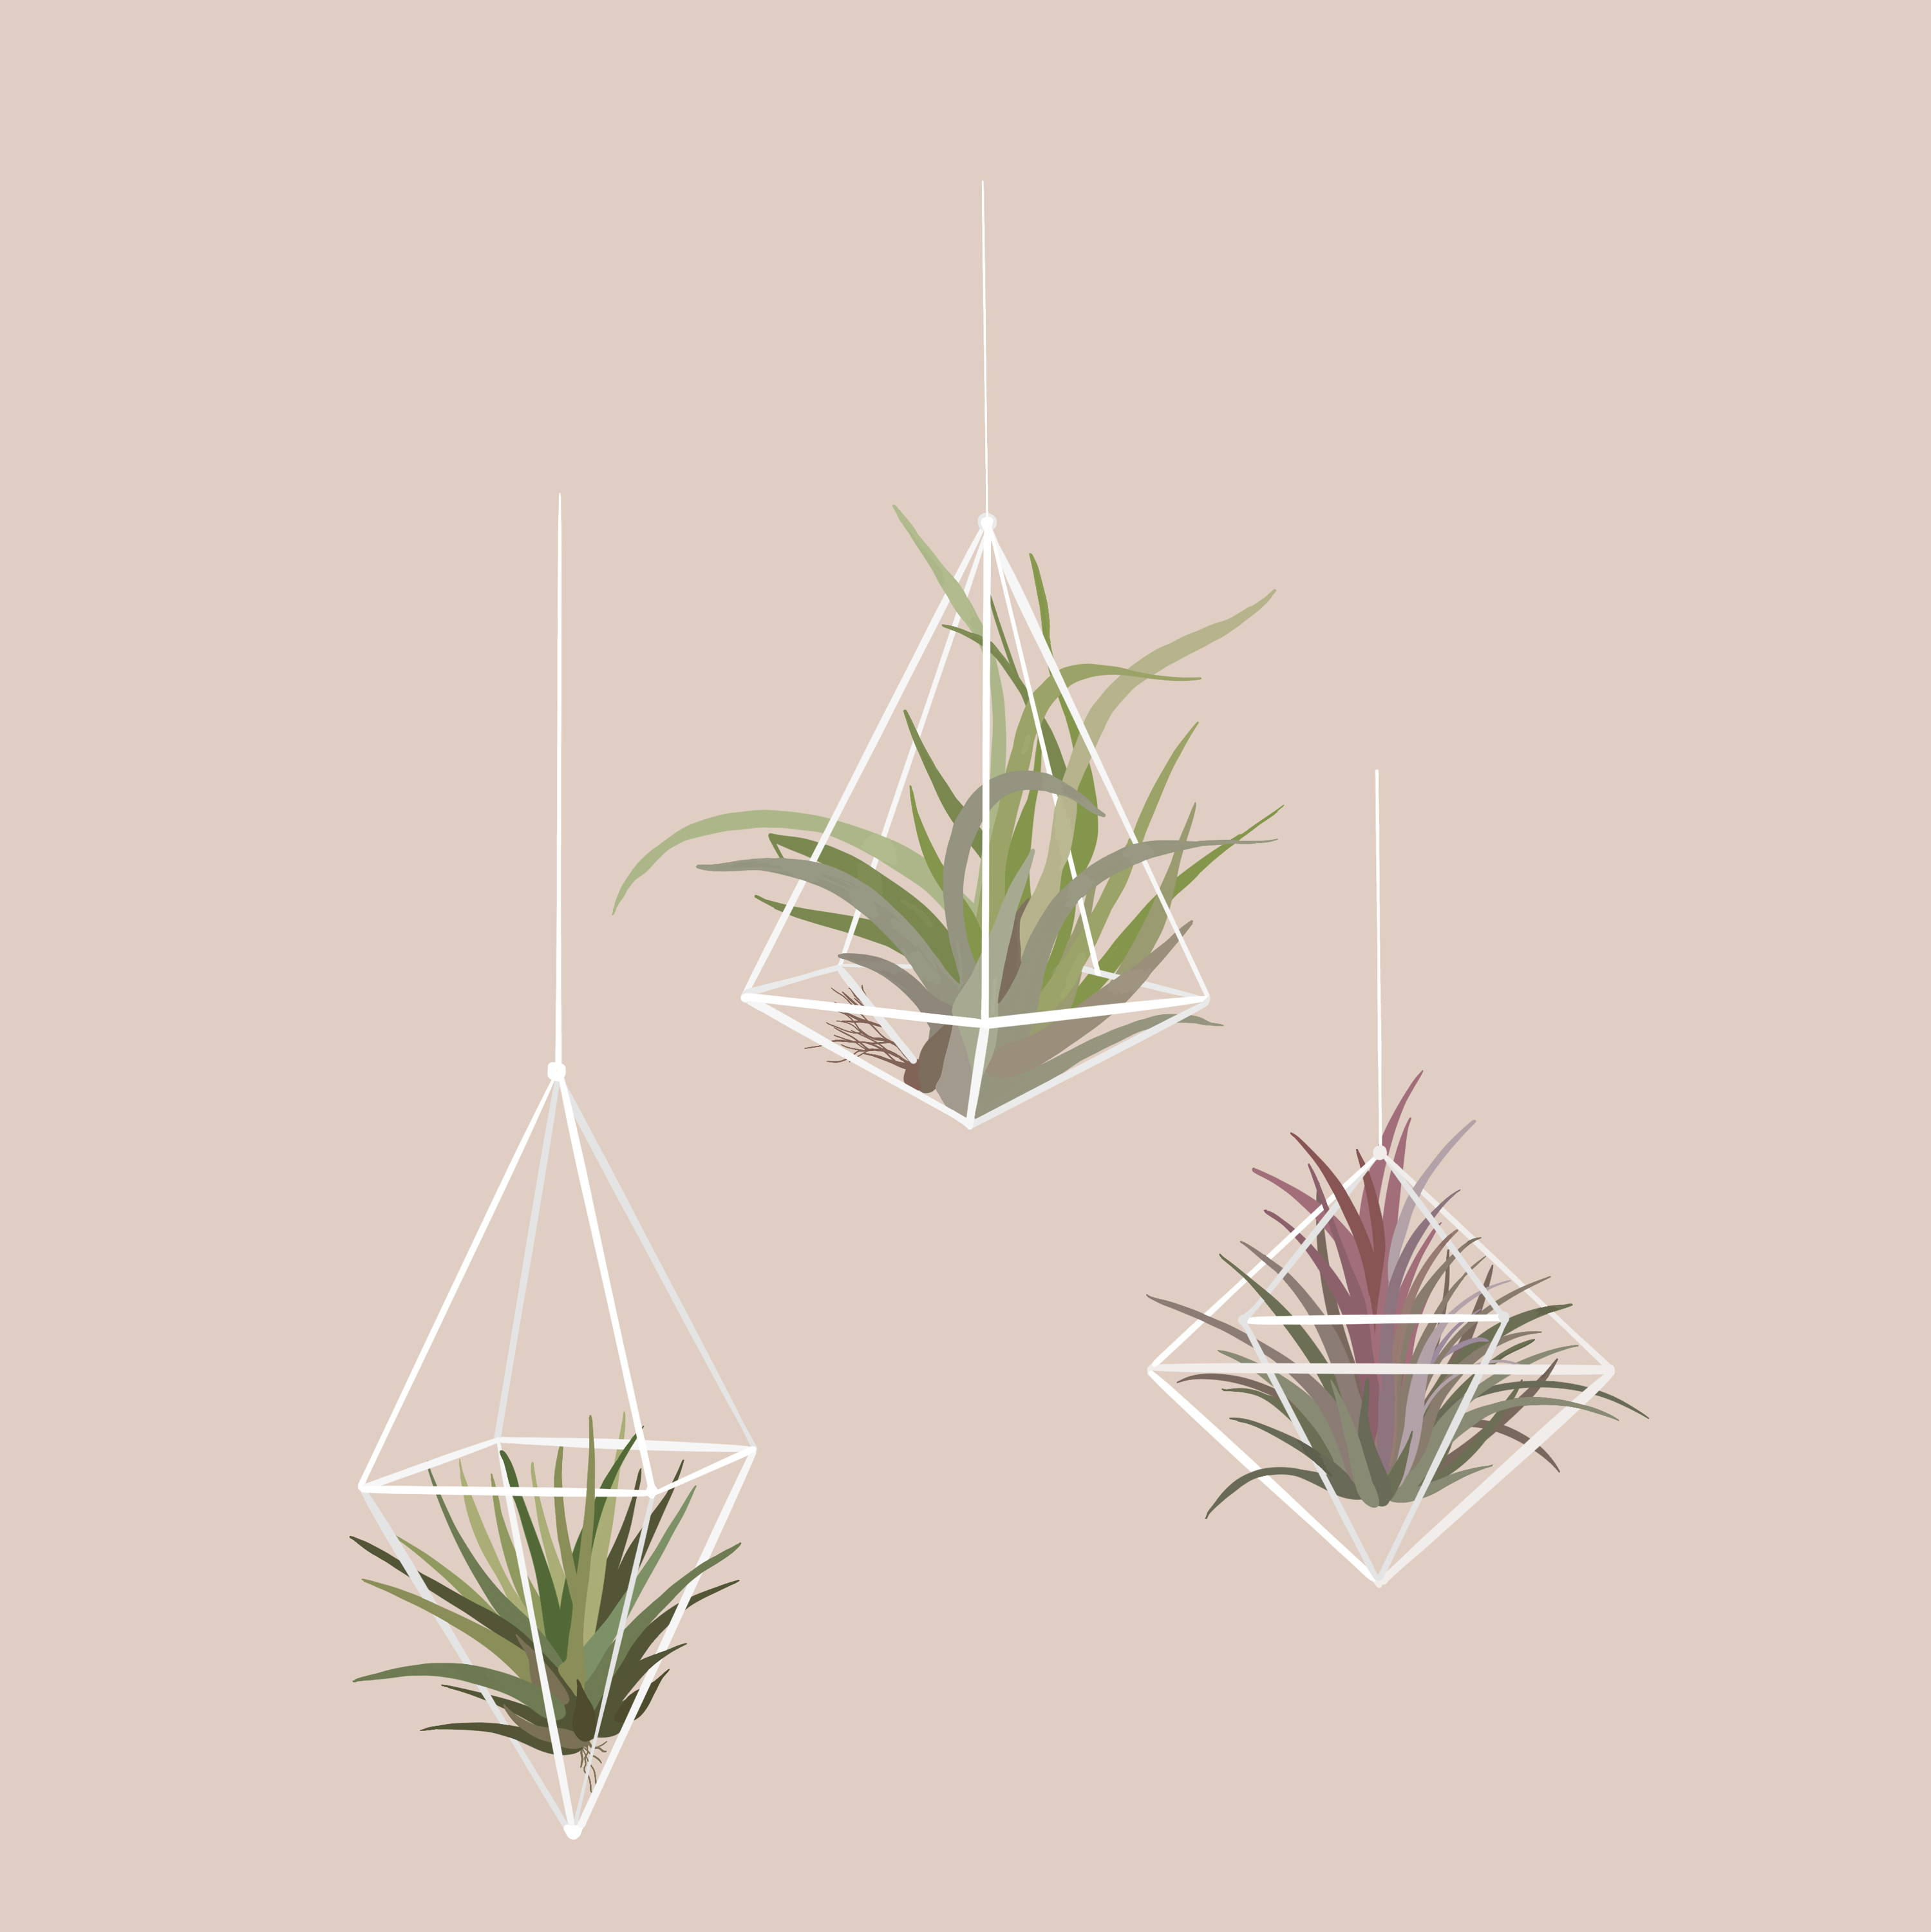 Drawing of Air Plants